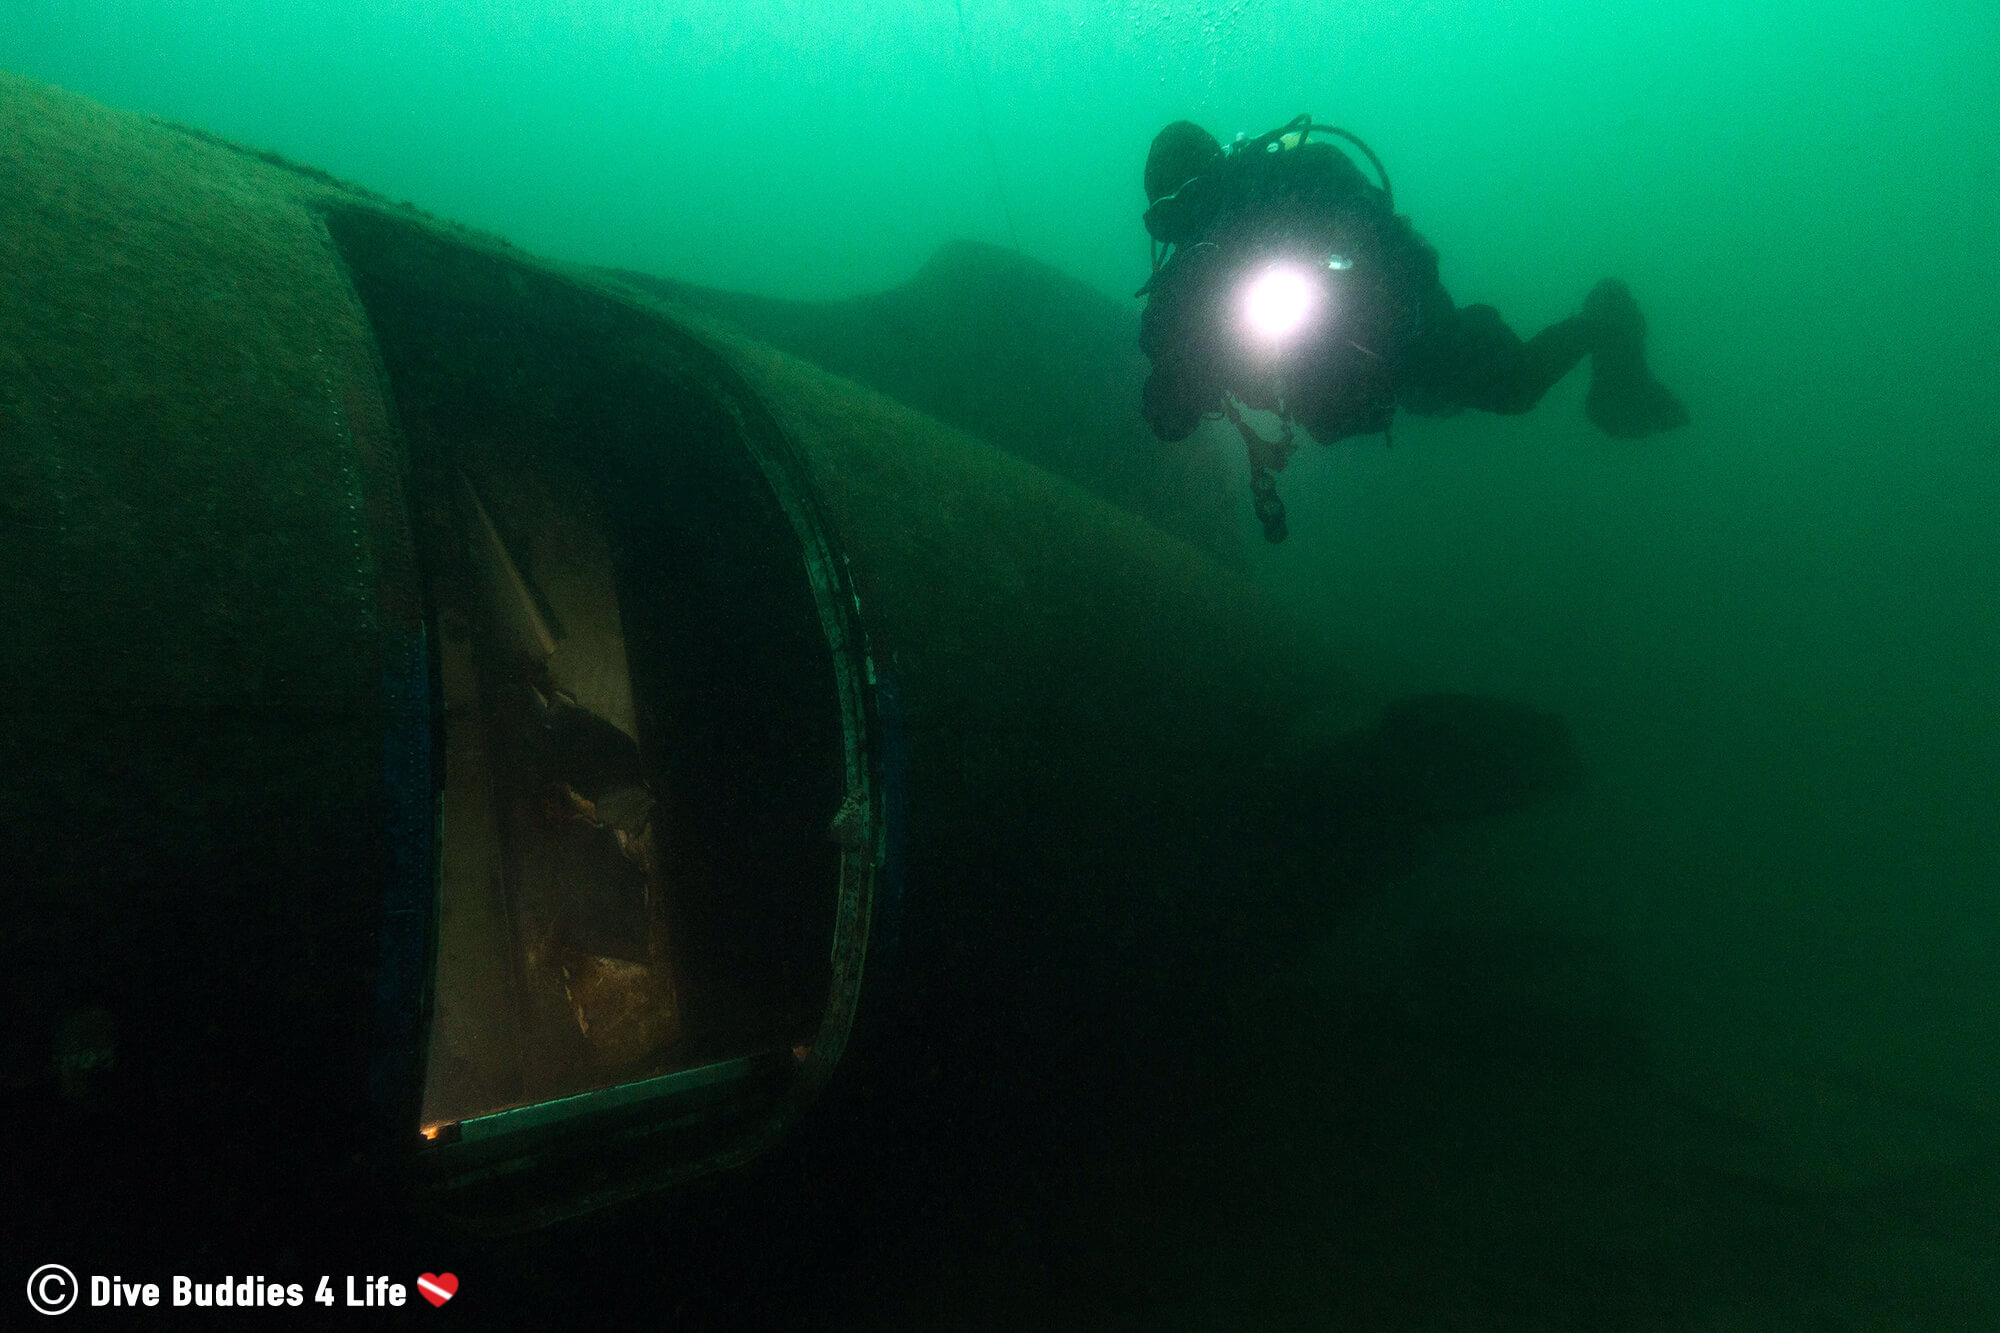 Scuba Diver In Vobster Quay With The Tail Of An Airplane And A Dive Torch, England, United Kingdom